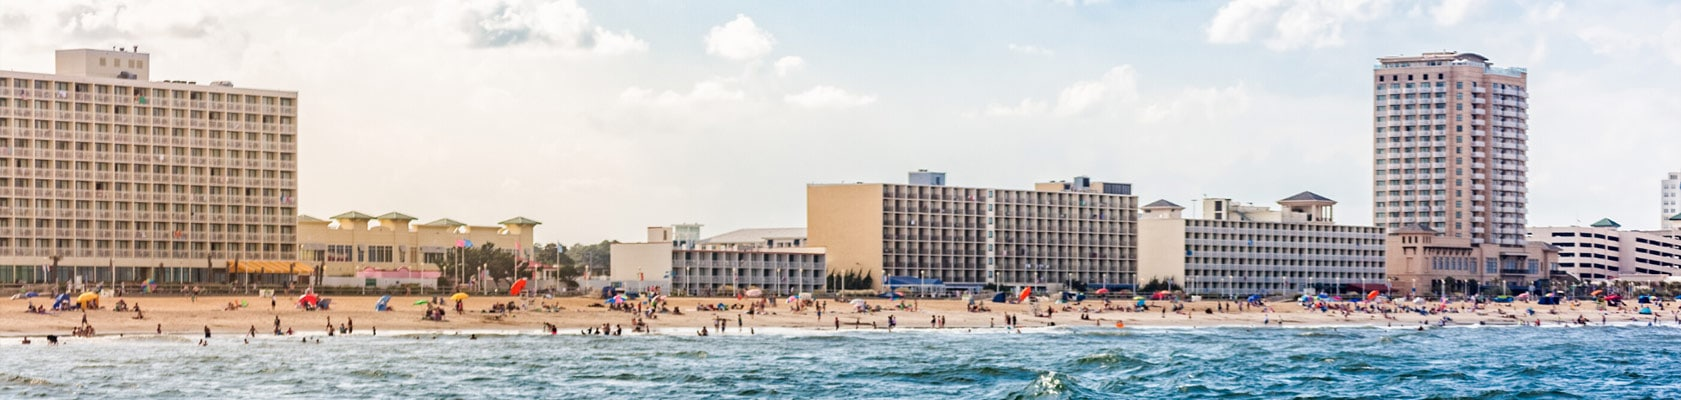 Virginia Beach VA skyline from the ocean | Breit Cantor: Virginia Beach Personal Injury Attorneys